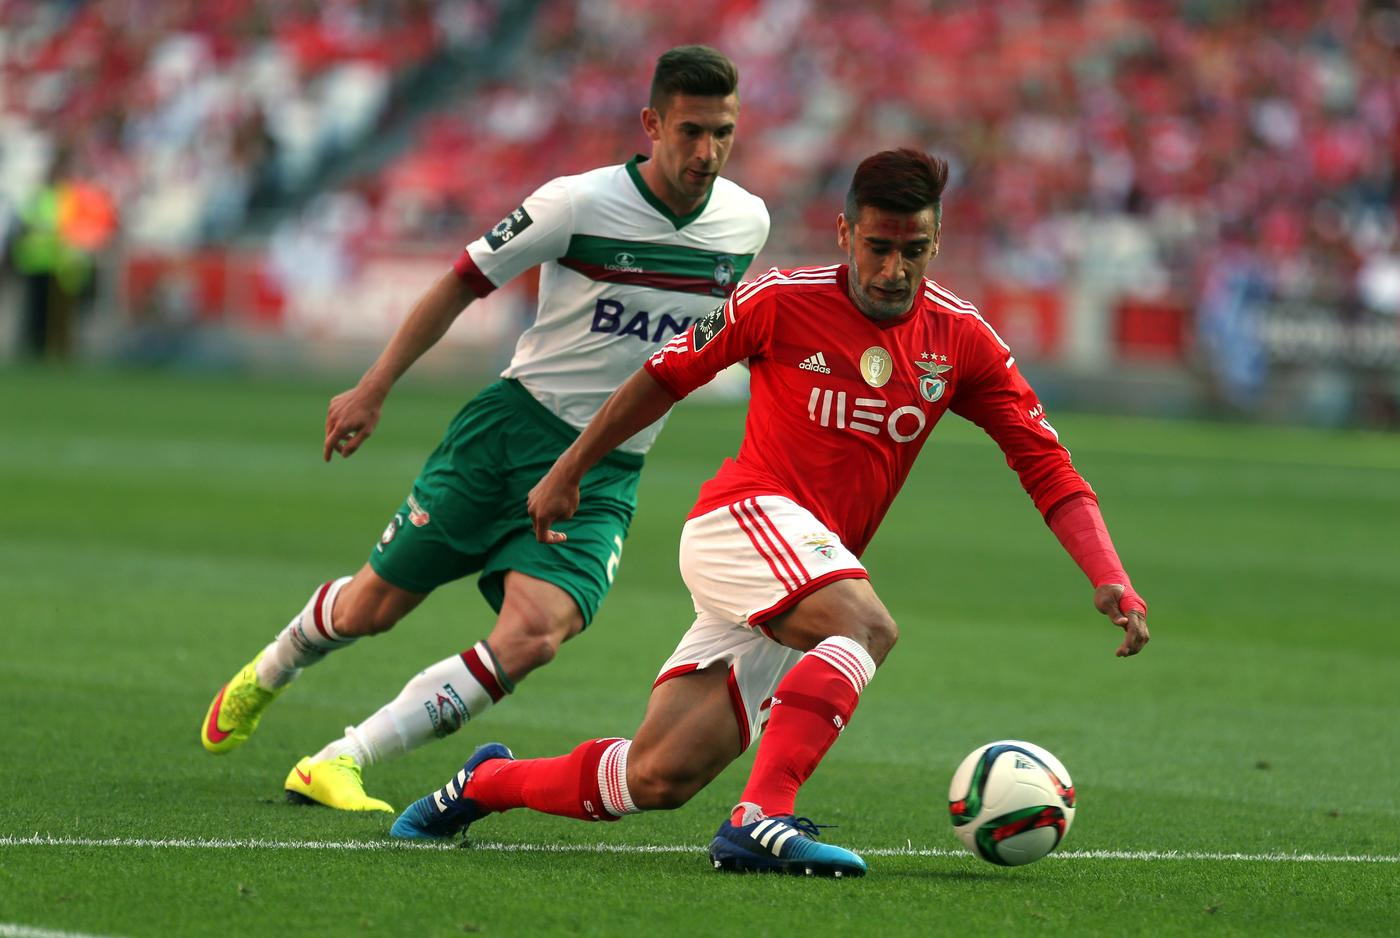 Liverpool 'have agreement over Eduardo Salvio transfer, deal to be completed in January'